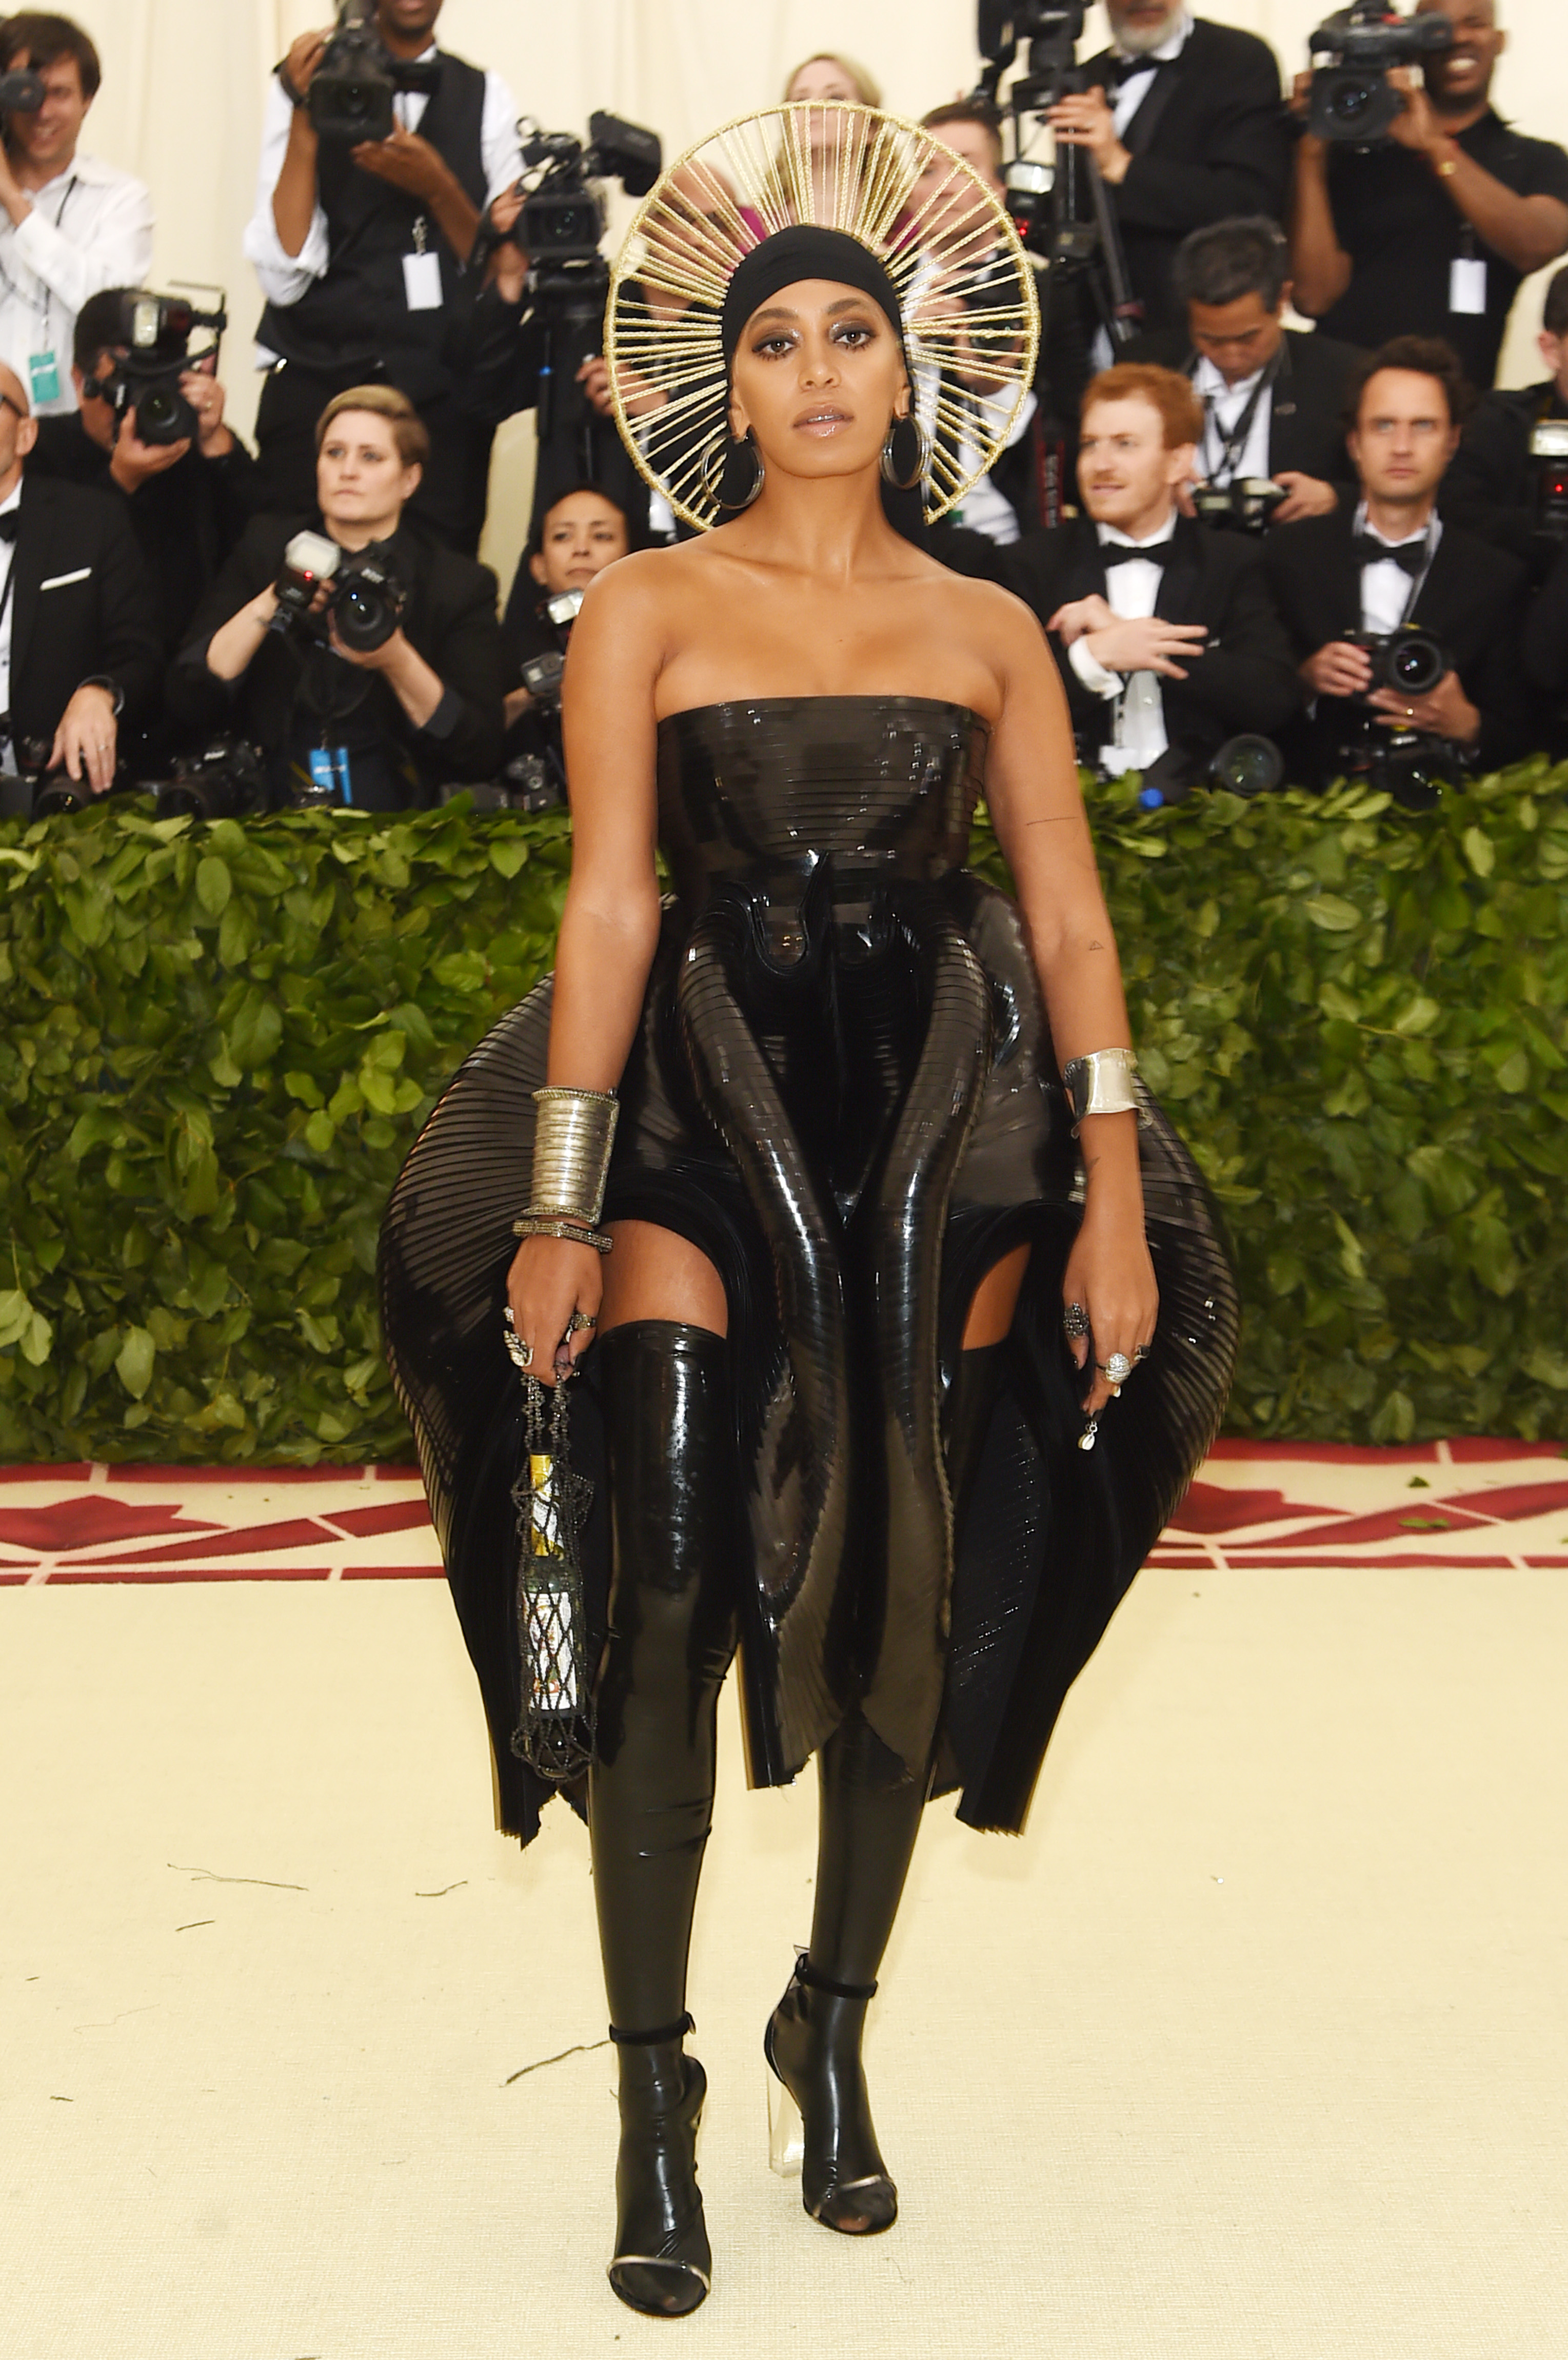 NEW YORK, NY - MAY 07: Solange Knowles attends the Heavenly Bodies: Fashion & The Catholic Imagination Costume Institute Gala at The Metropolitan Museum of Art on May 7, 2018 in New York City. (Photo by Jamie McCarthy/Getty Images)